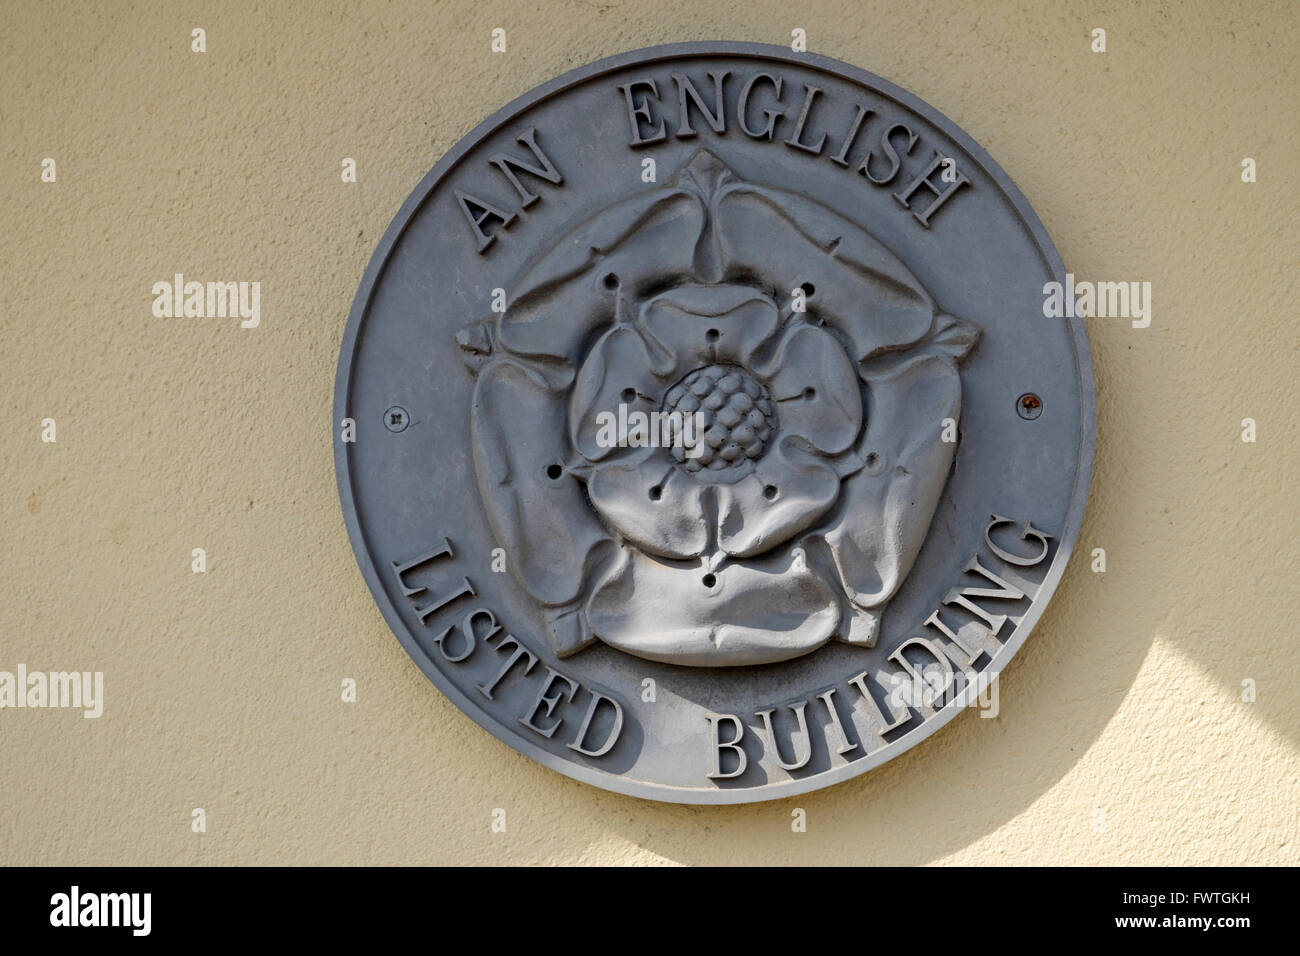 An English Listed Building badge - Stock Image